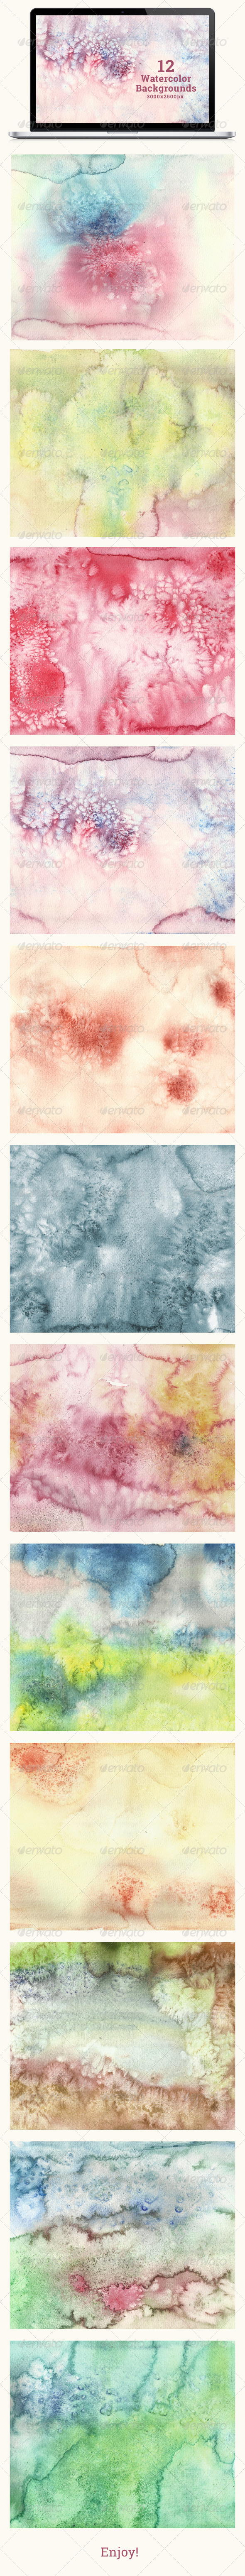 Set of 12 Watercolor Backgrounds - Abstract Backgrounds